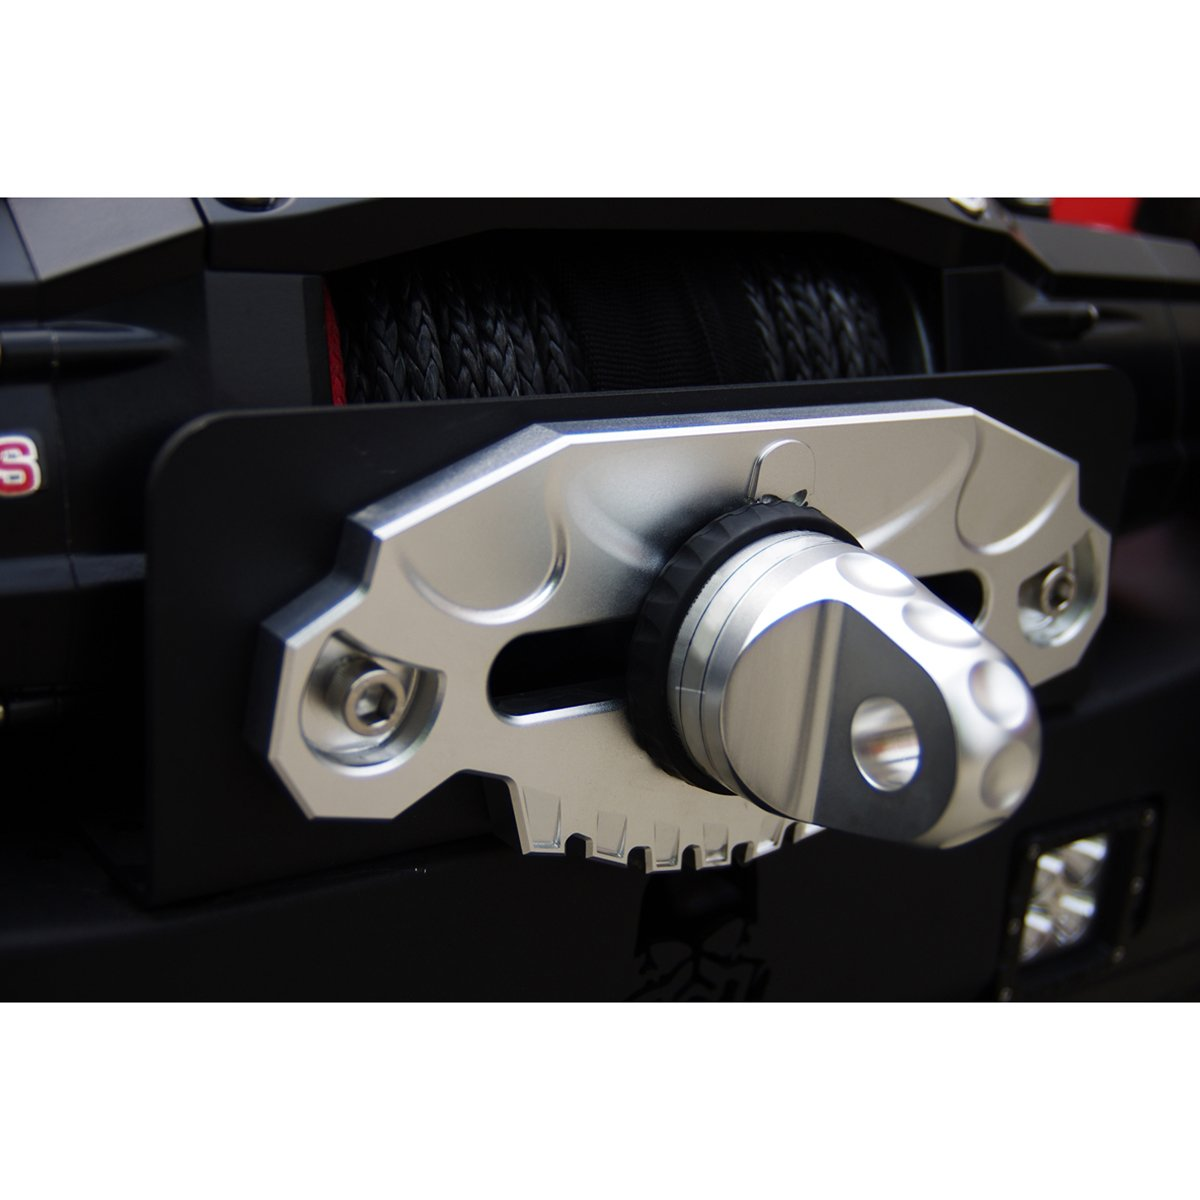 Topfire Universal Winch Hawse Fairlead For Synthetic Jeep Jk Wiring Up In Dress Rope With Decorative Design Silver Automotive